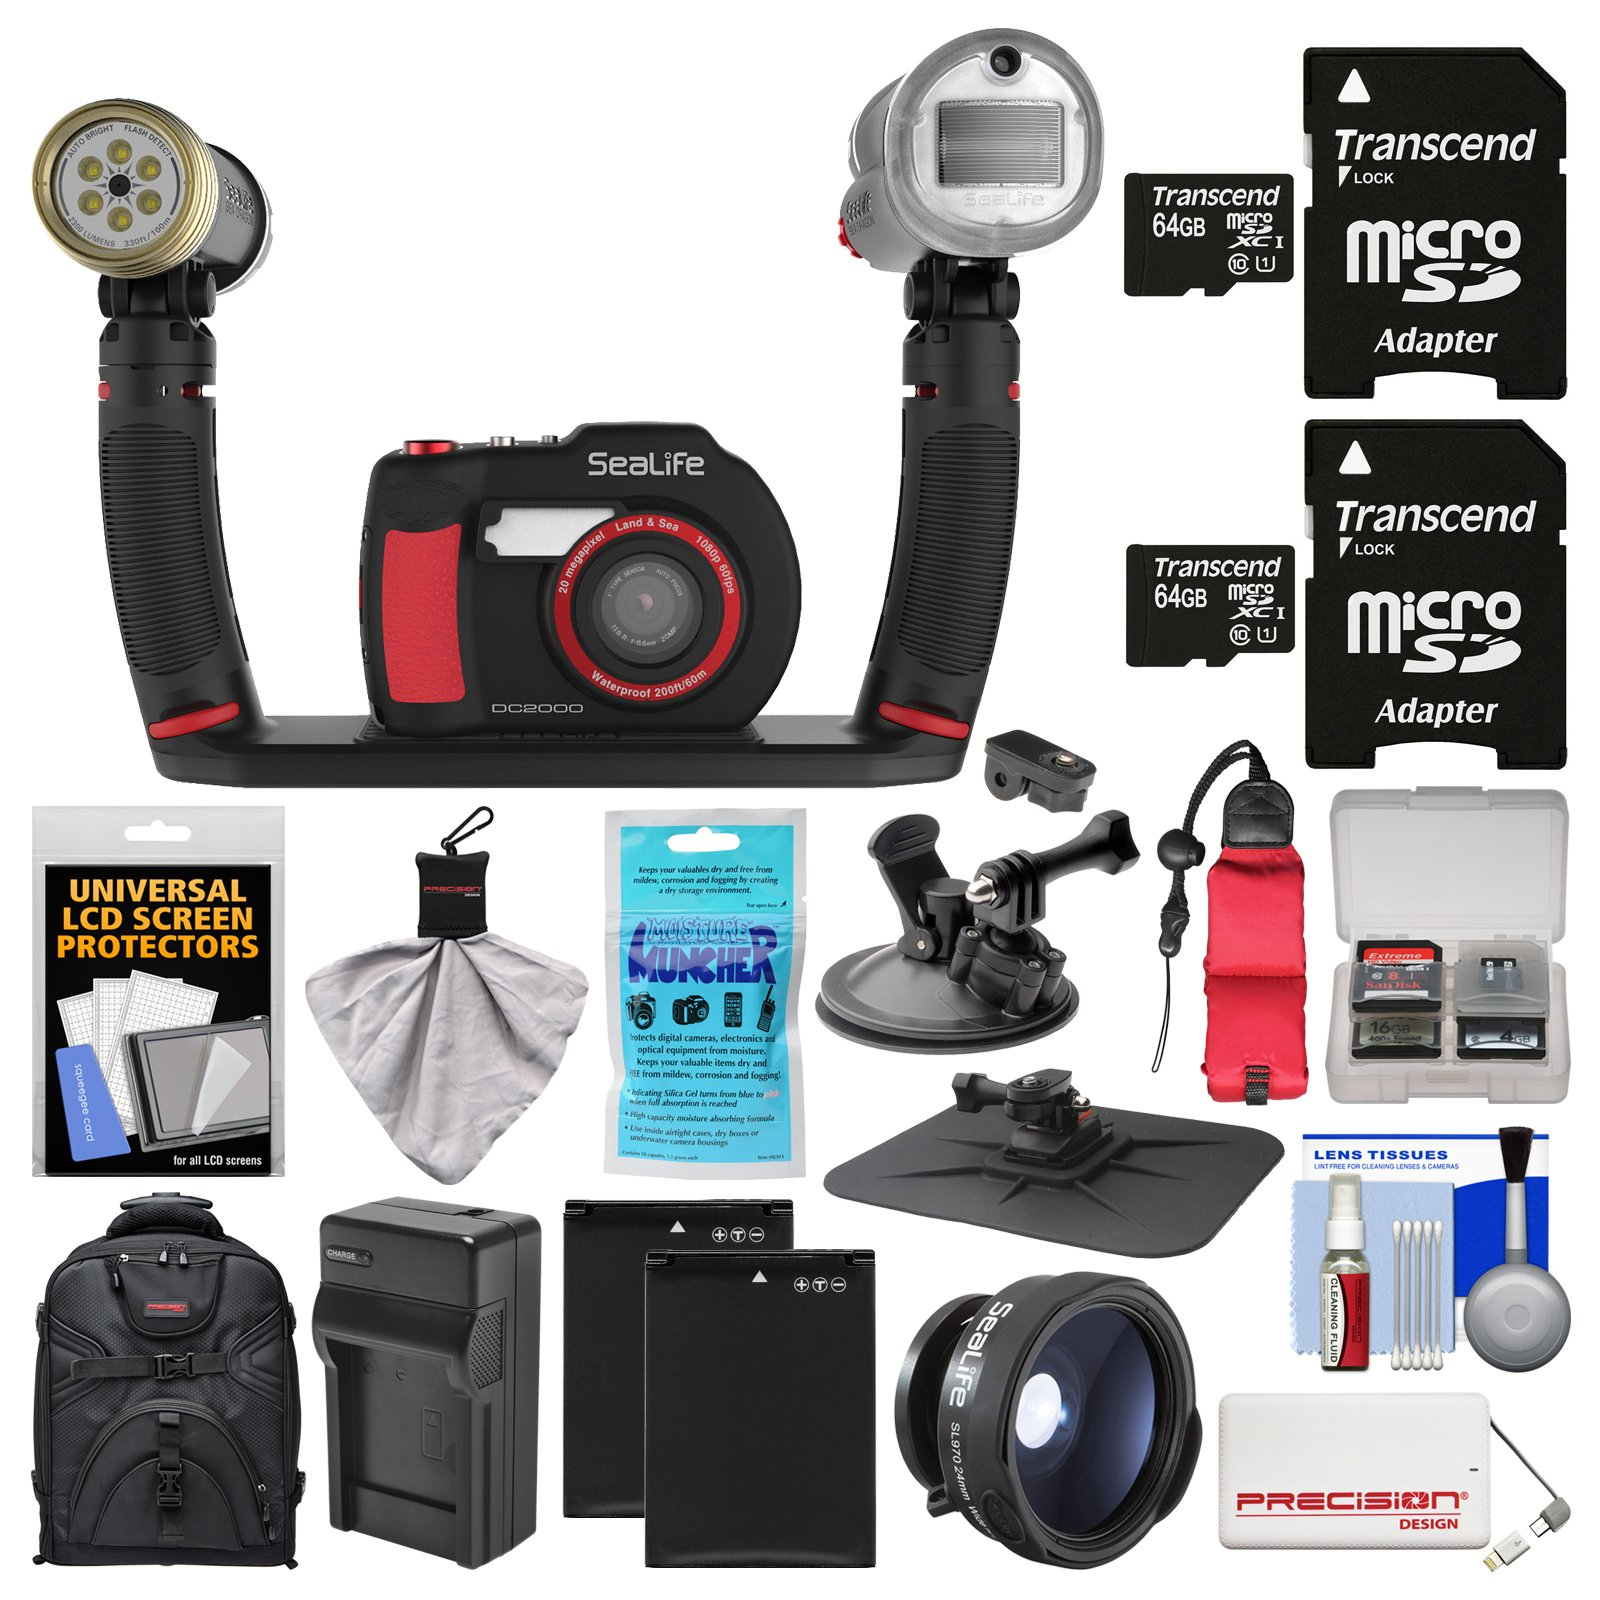 SeaLife DC2000 HD Underwater Digital Camera with Sea Dragon Pro Duo Light & Flash Set + Wide Angle Lens + 2 64GB Cards + Batteries & Charger + Backpack Kit by SeaLife